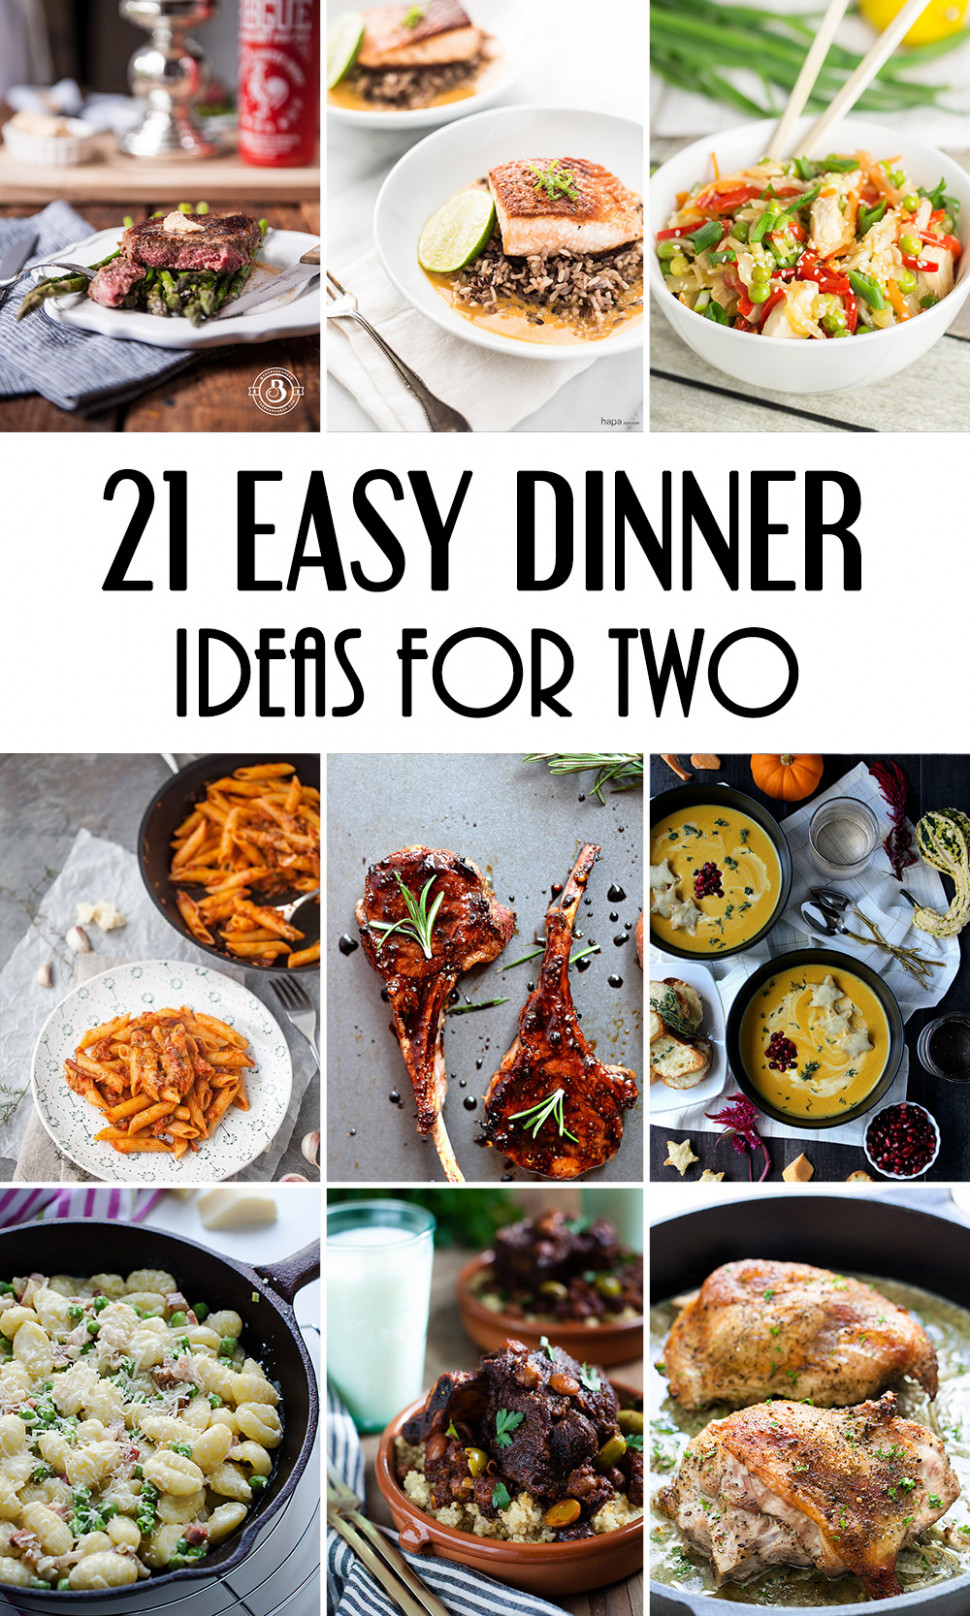 12 Easy Dinner Ideas For Two That Will Impress Your Loved One - recipes dinner for 2